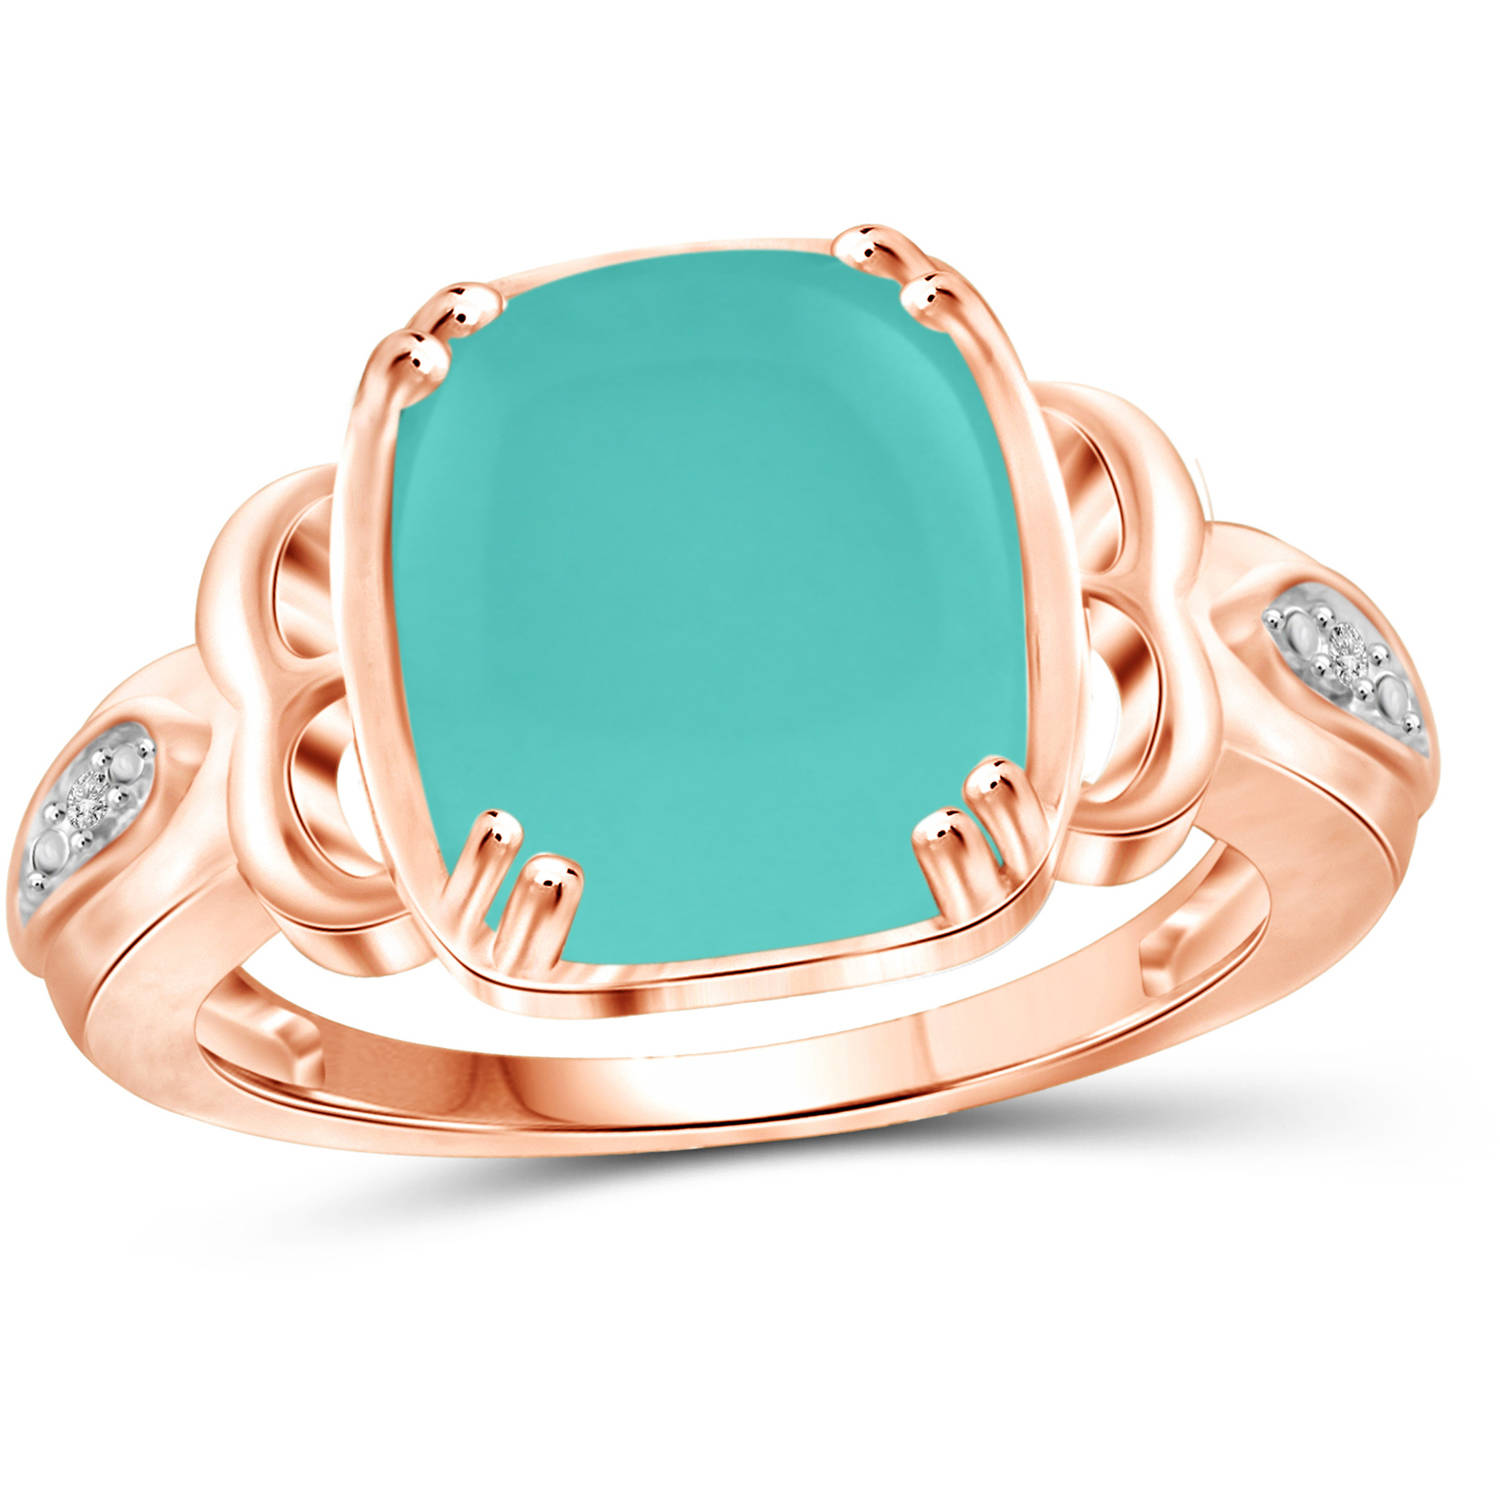 JewelersClub 5 Carat T.G.W. Chalcedony and White Diamond Accent Rose Gold over Silver Fashion Ring by JewelersClub